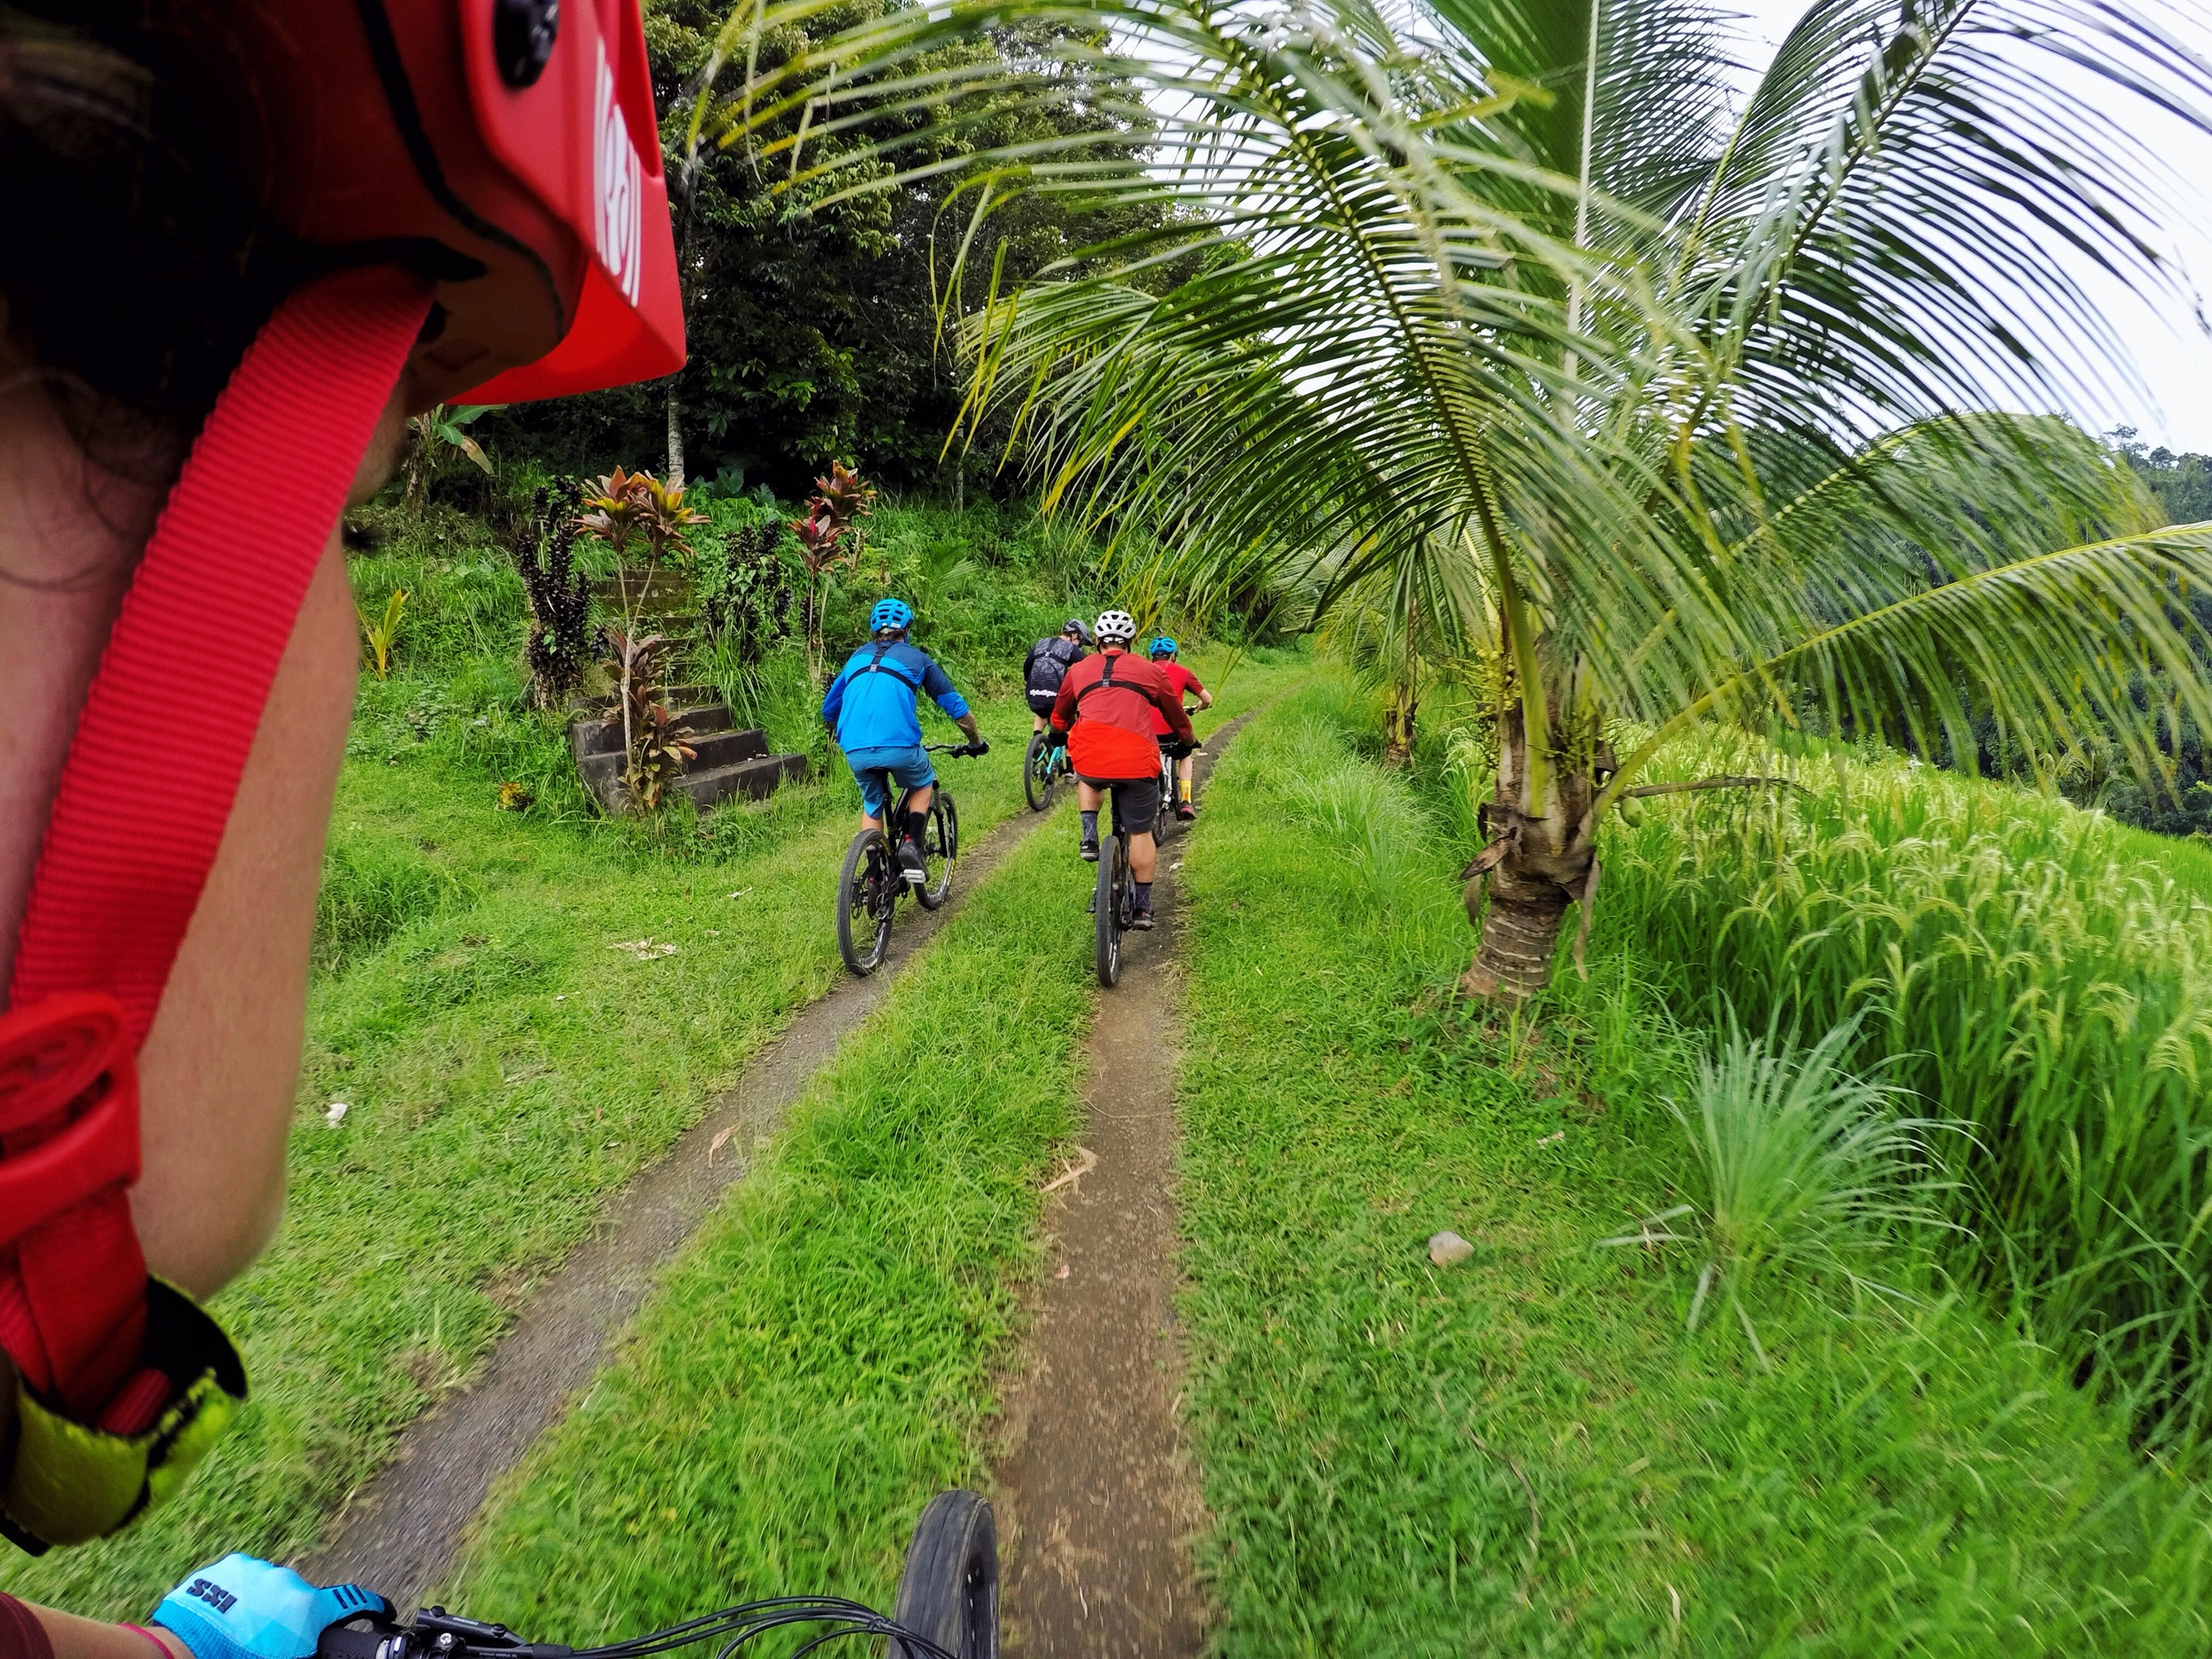 snaking double and singletrack roads wound their way through the rice fields.